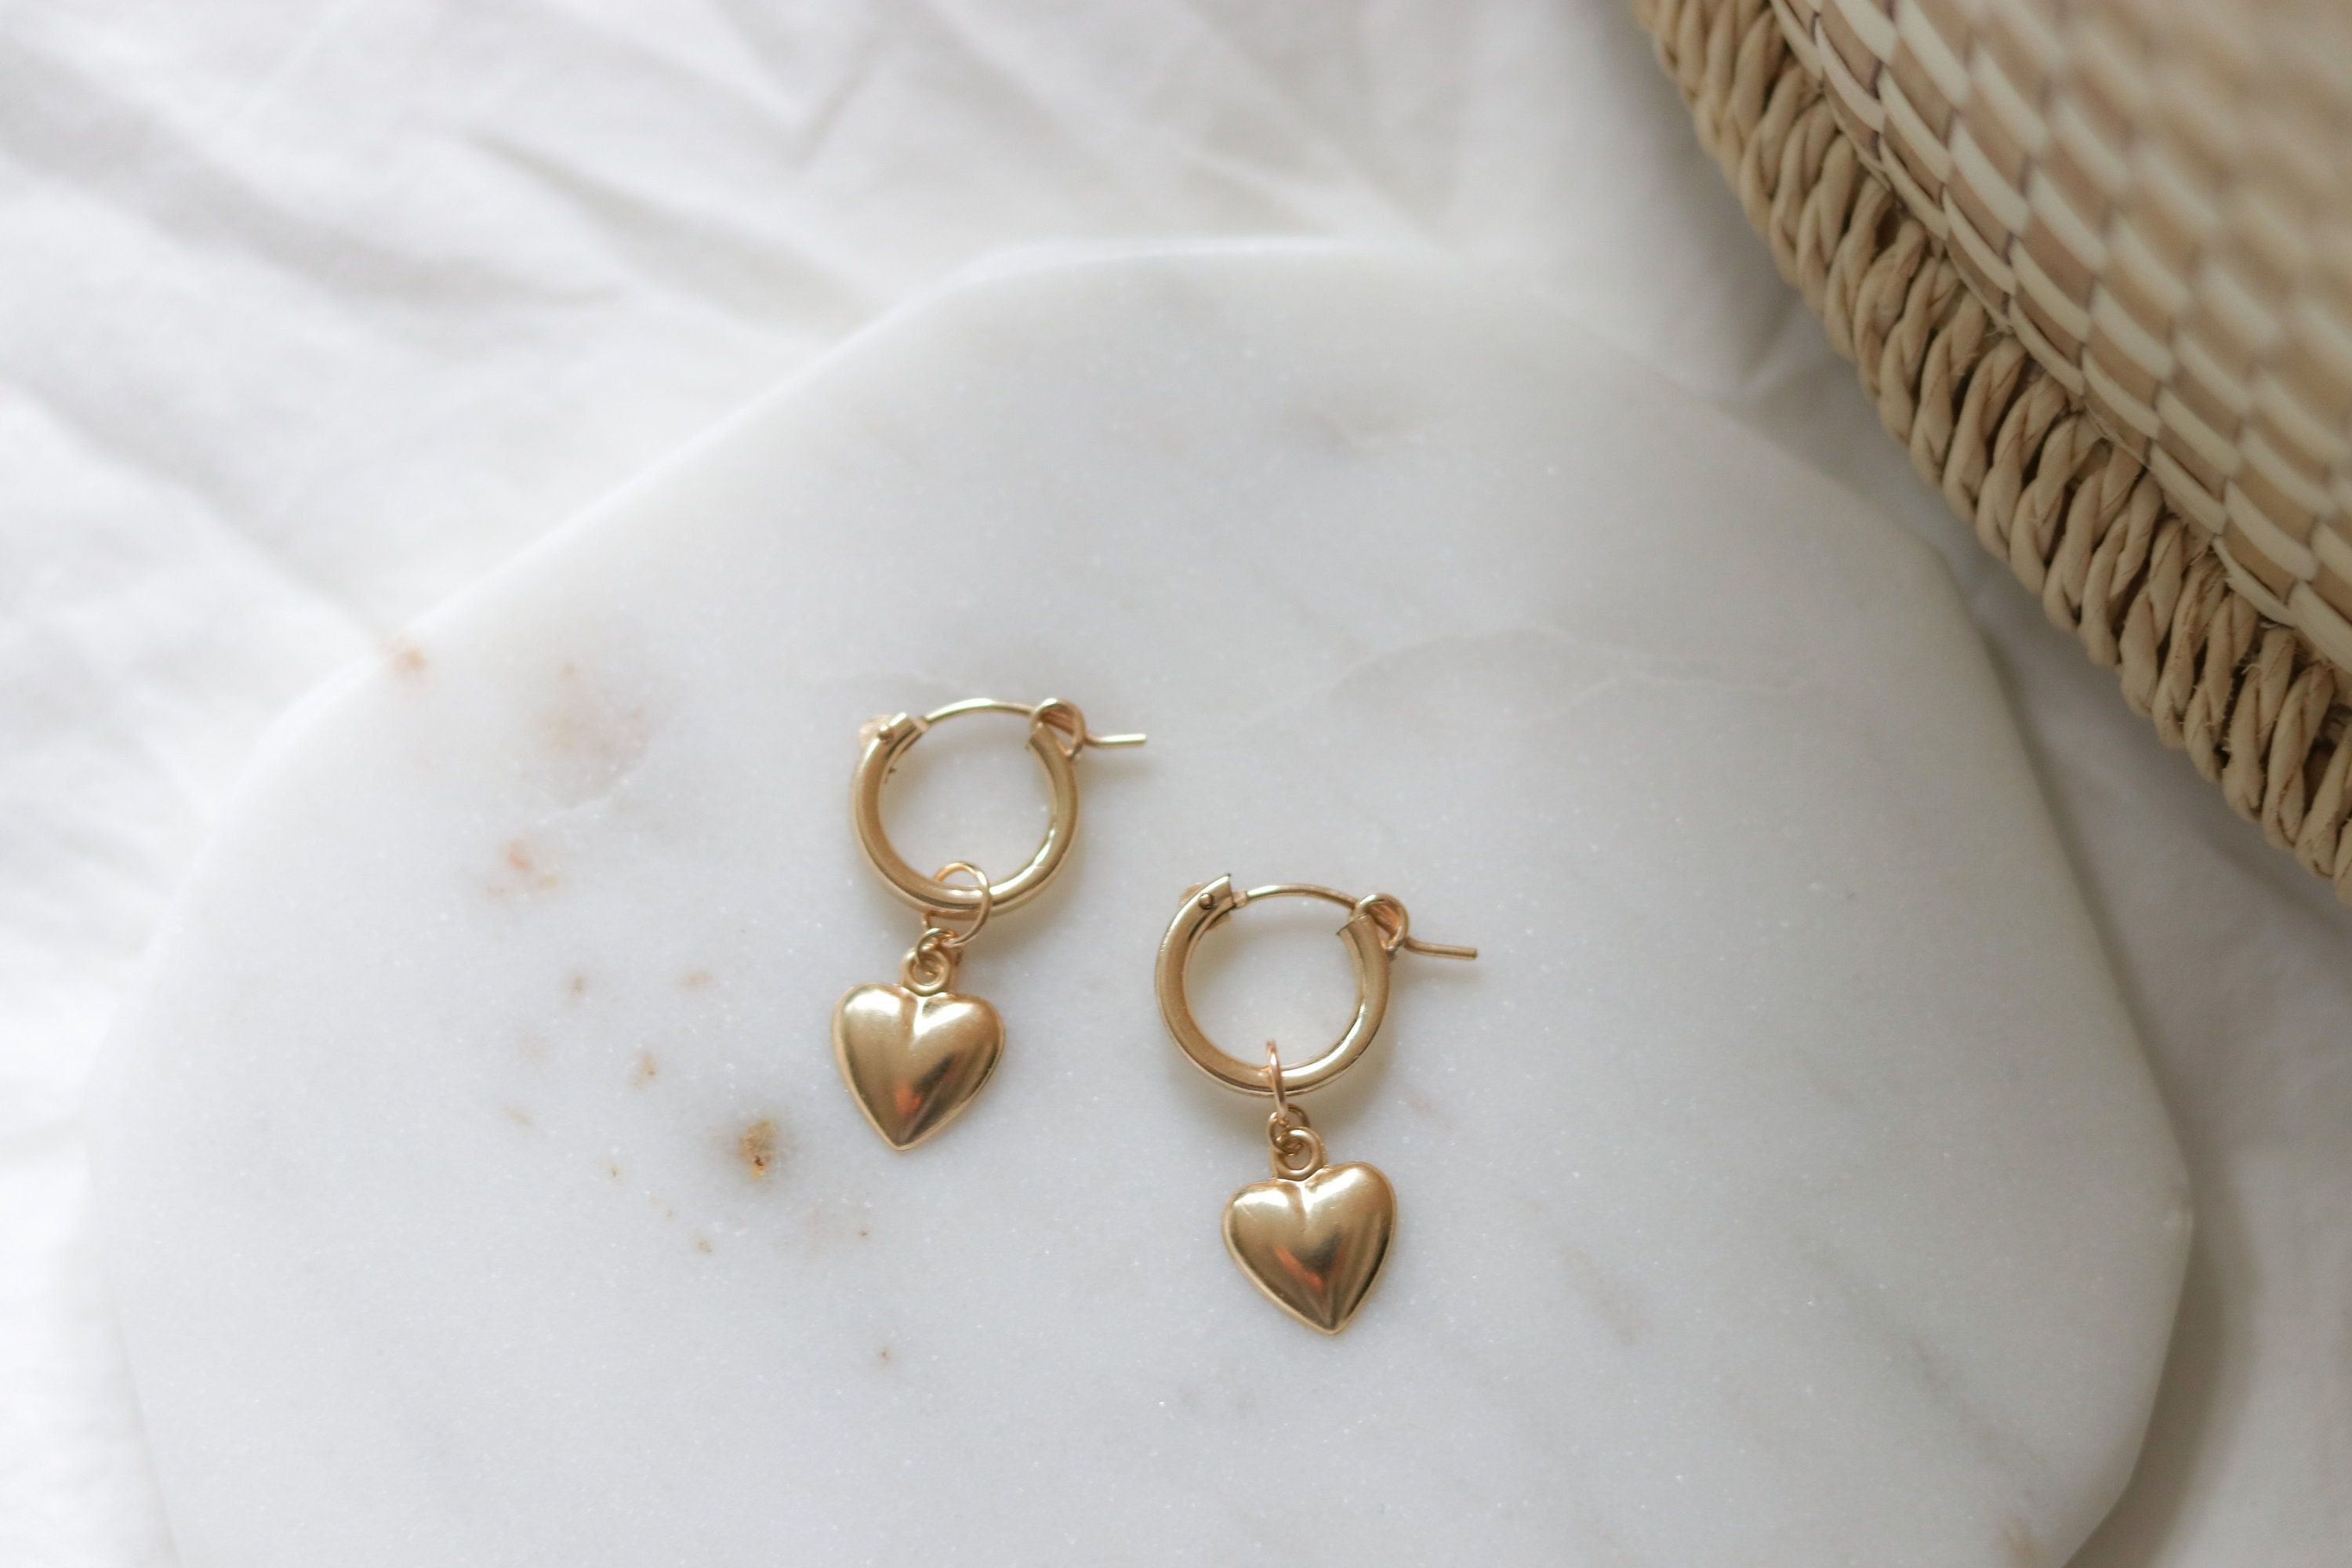 jewelry kozakh delicate dainty filled balance earrings bar kz handmade minimalist moon gold